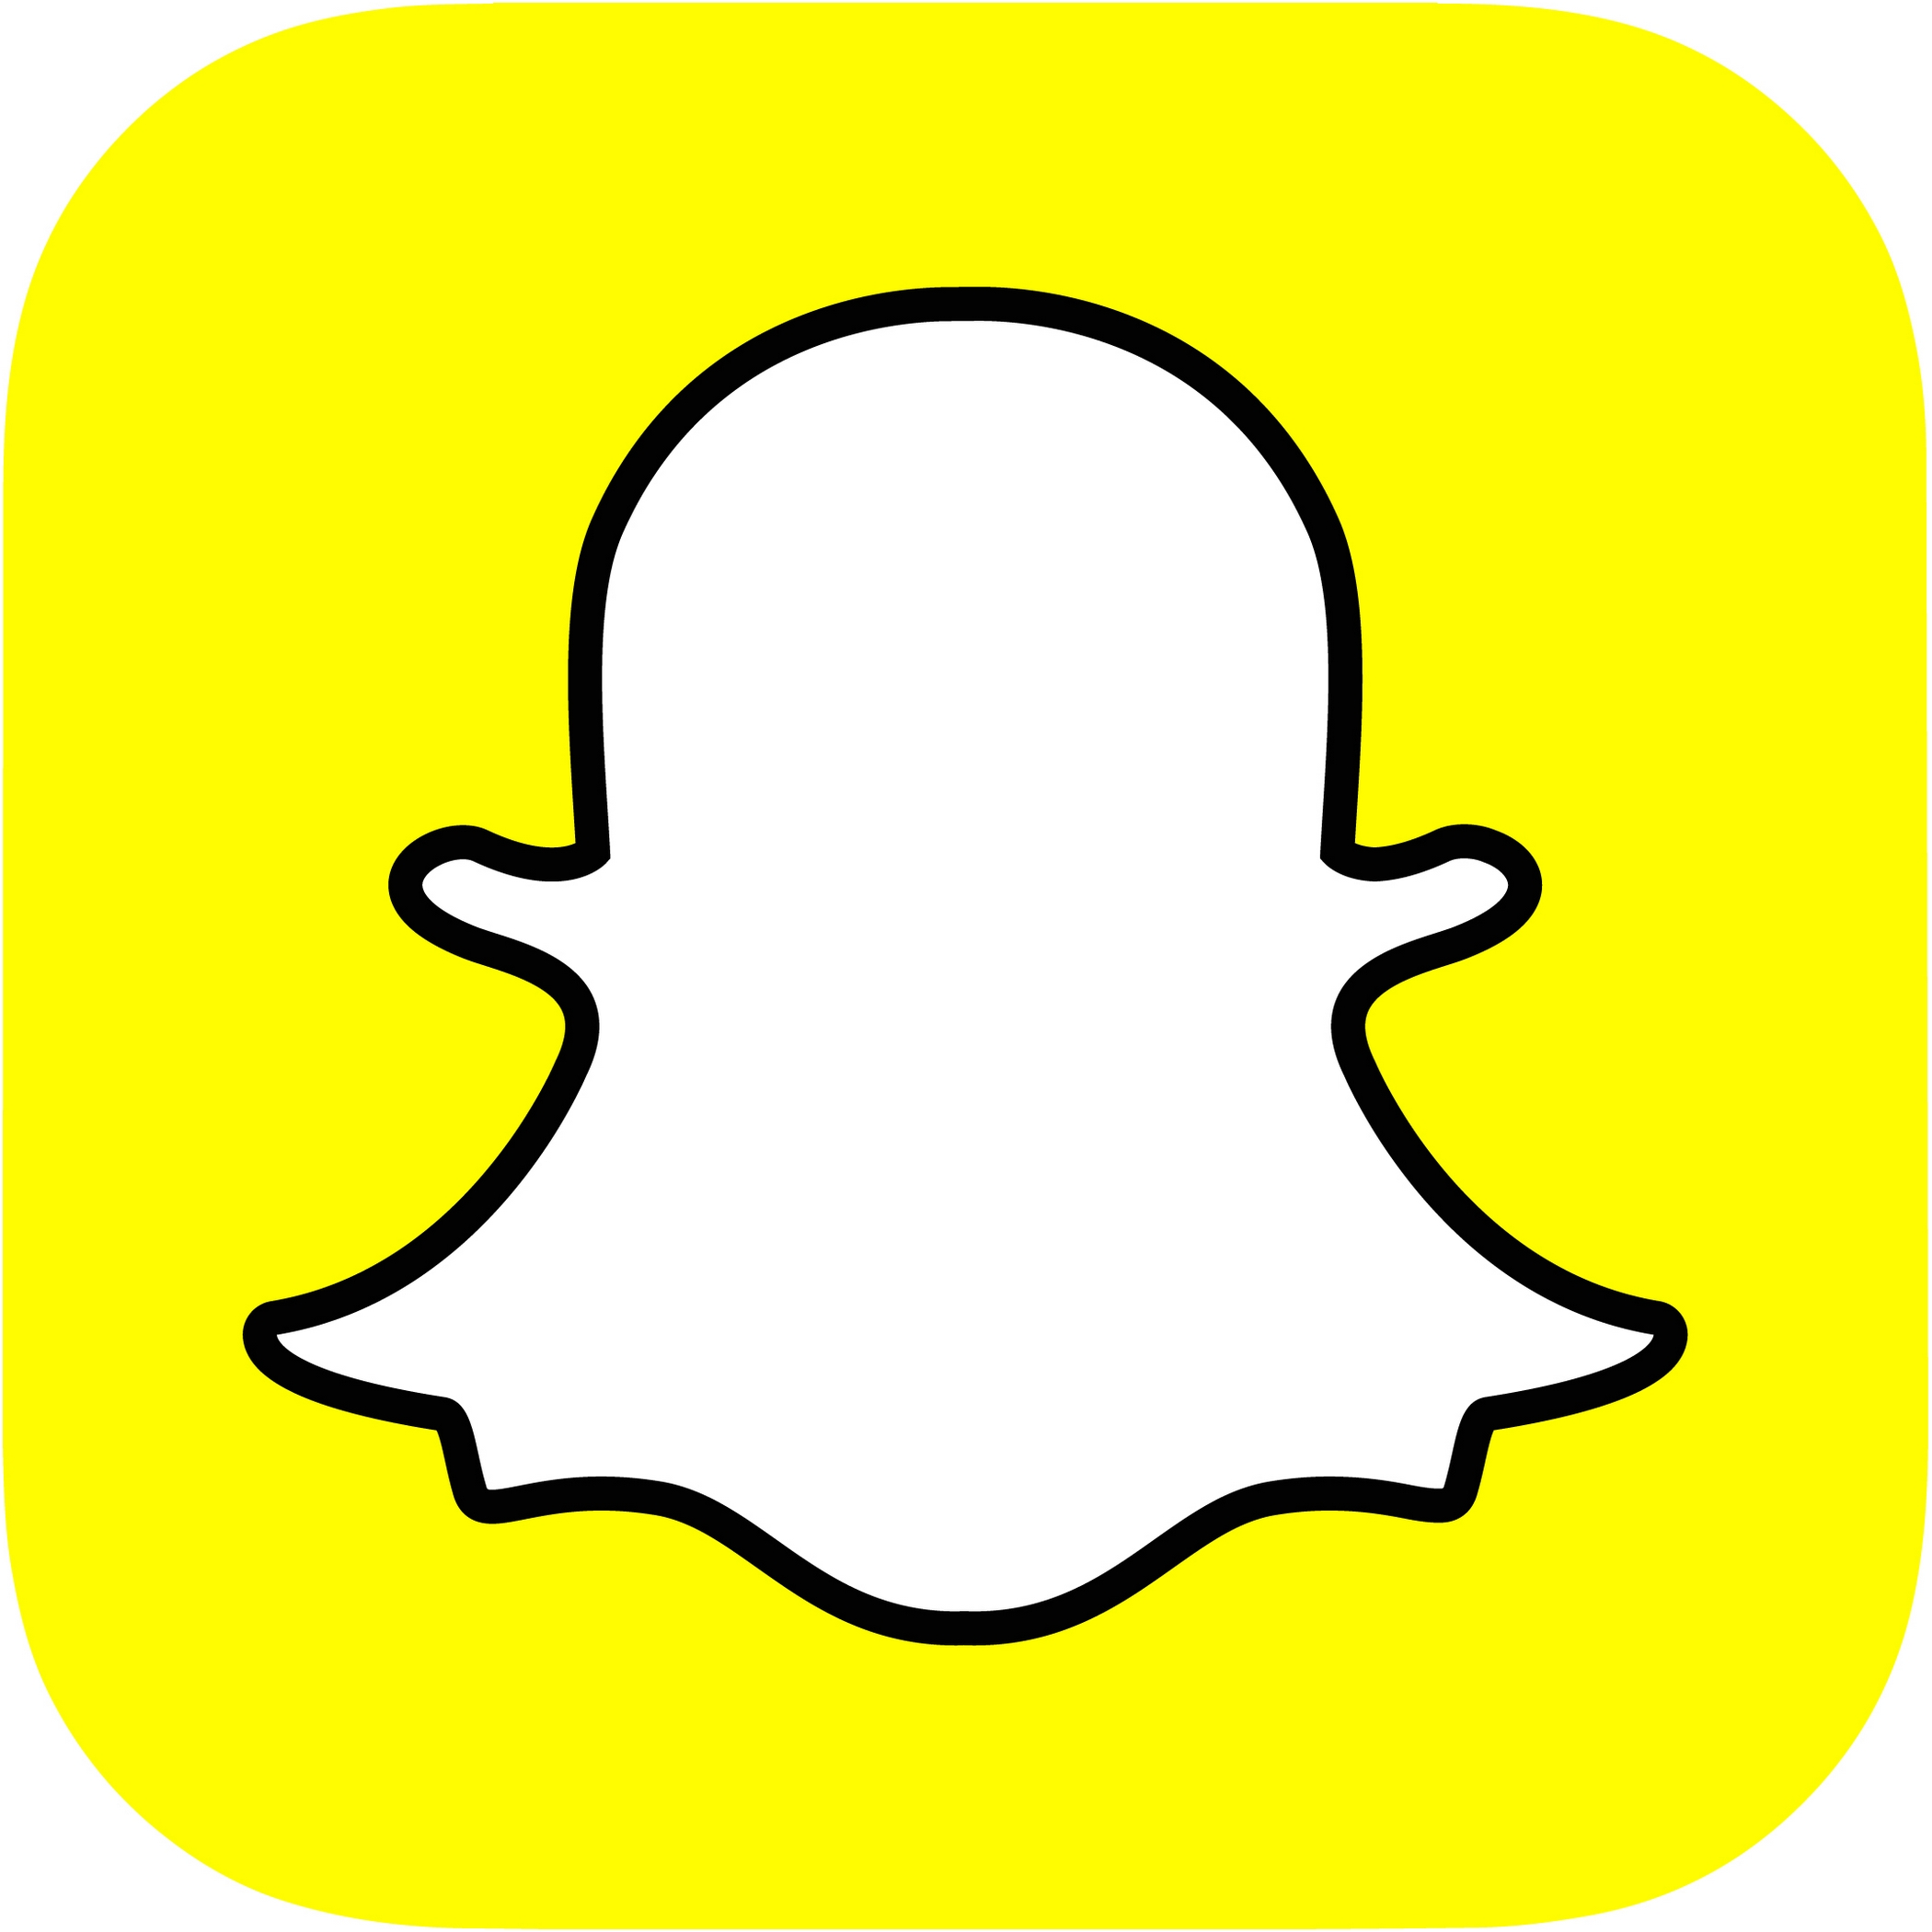 Snapchat Wants to Move Into Sponsored Content